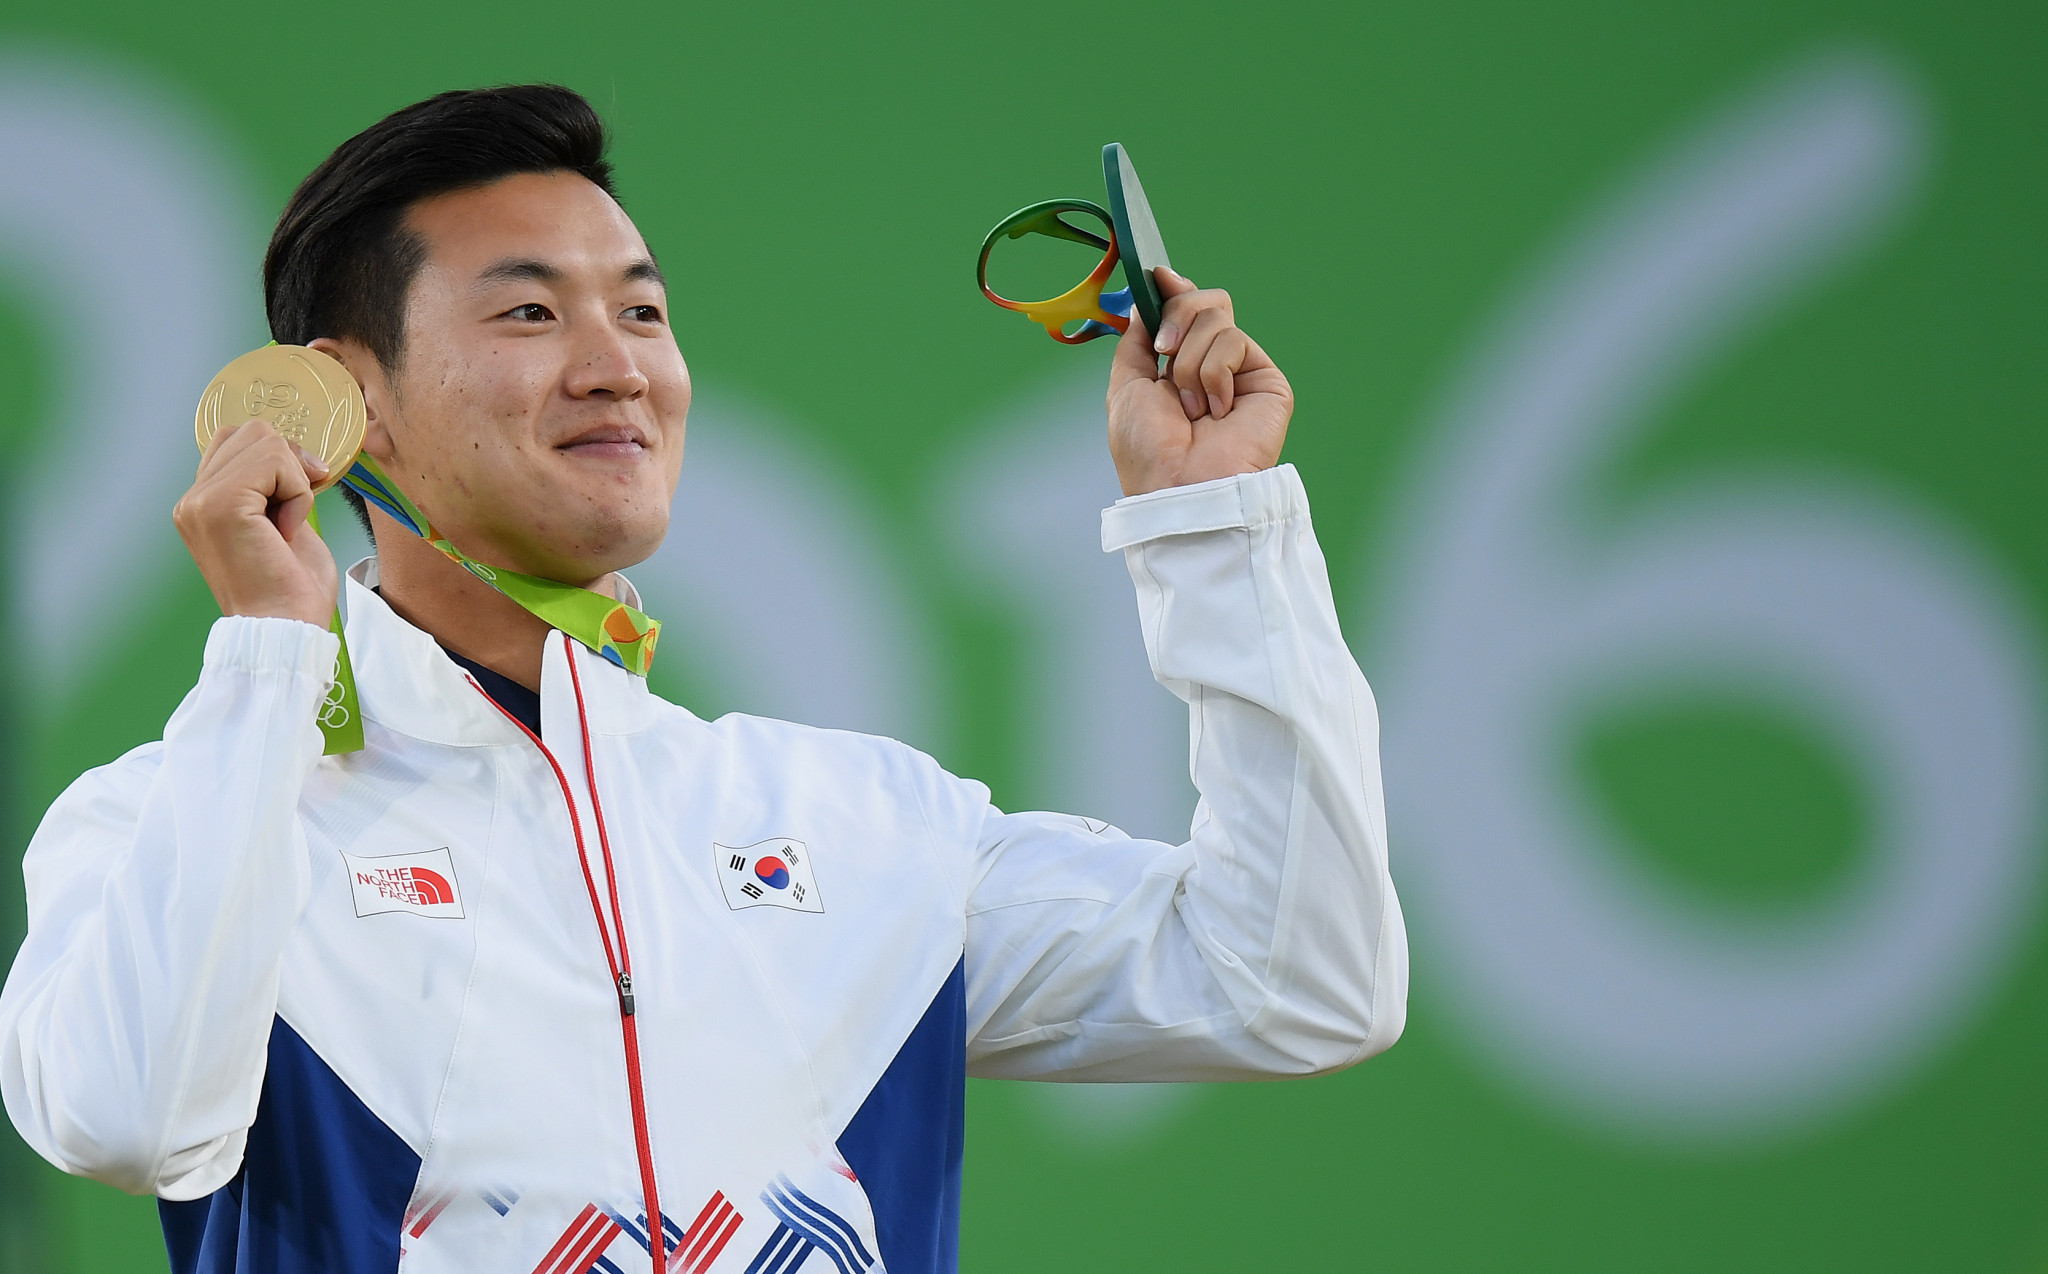 Double Olympic champion Bonchan exits in South Korea's archery Tokyo 2020 trials